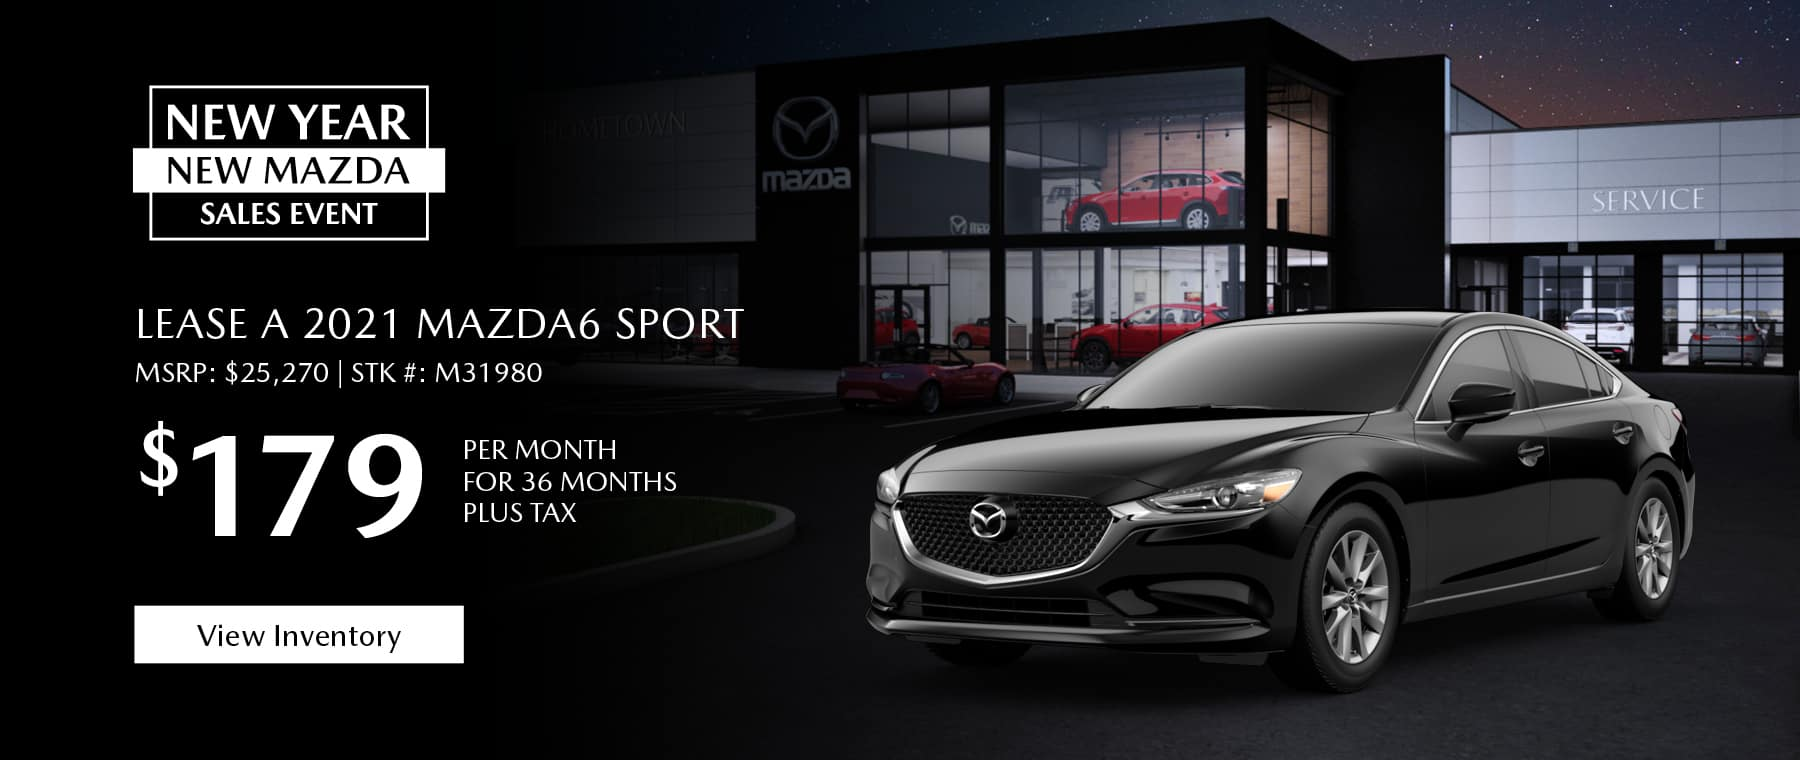 Lease the 2021 Mazda6 Sport for $179 per month, plus tax for 36 months. Click or tap here to view our inventory.